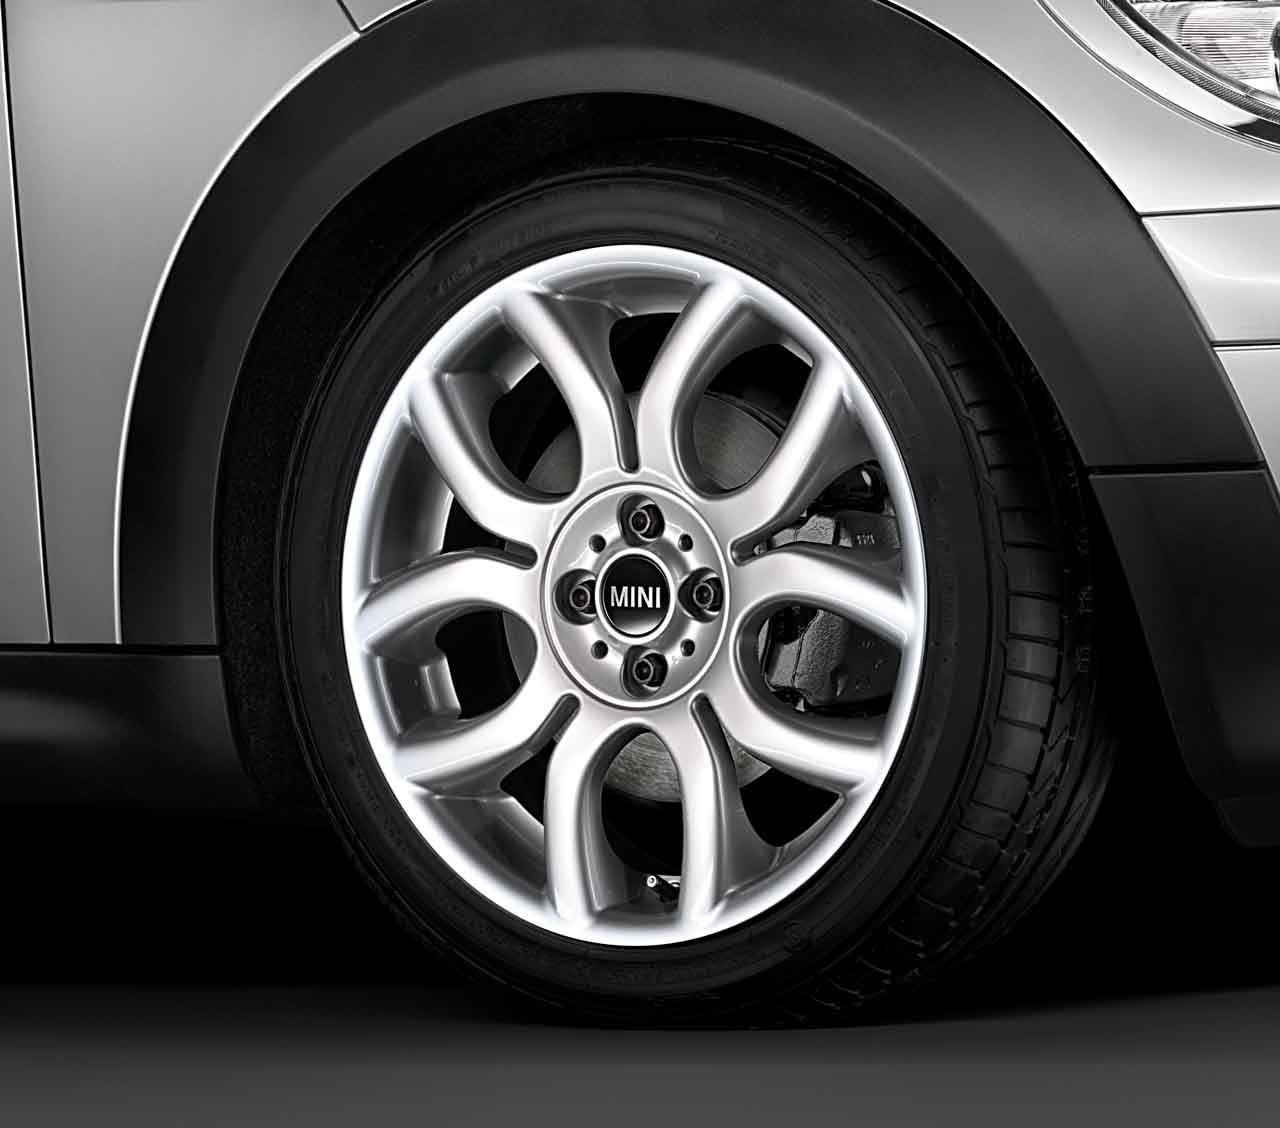 Mini Genuine 17 Inch Light Alloy Wheel Flame Spoke R97 Silver